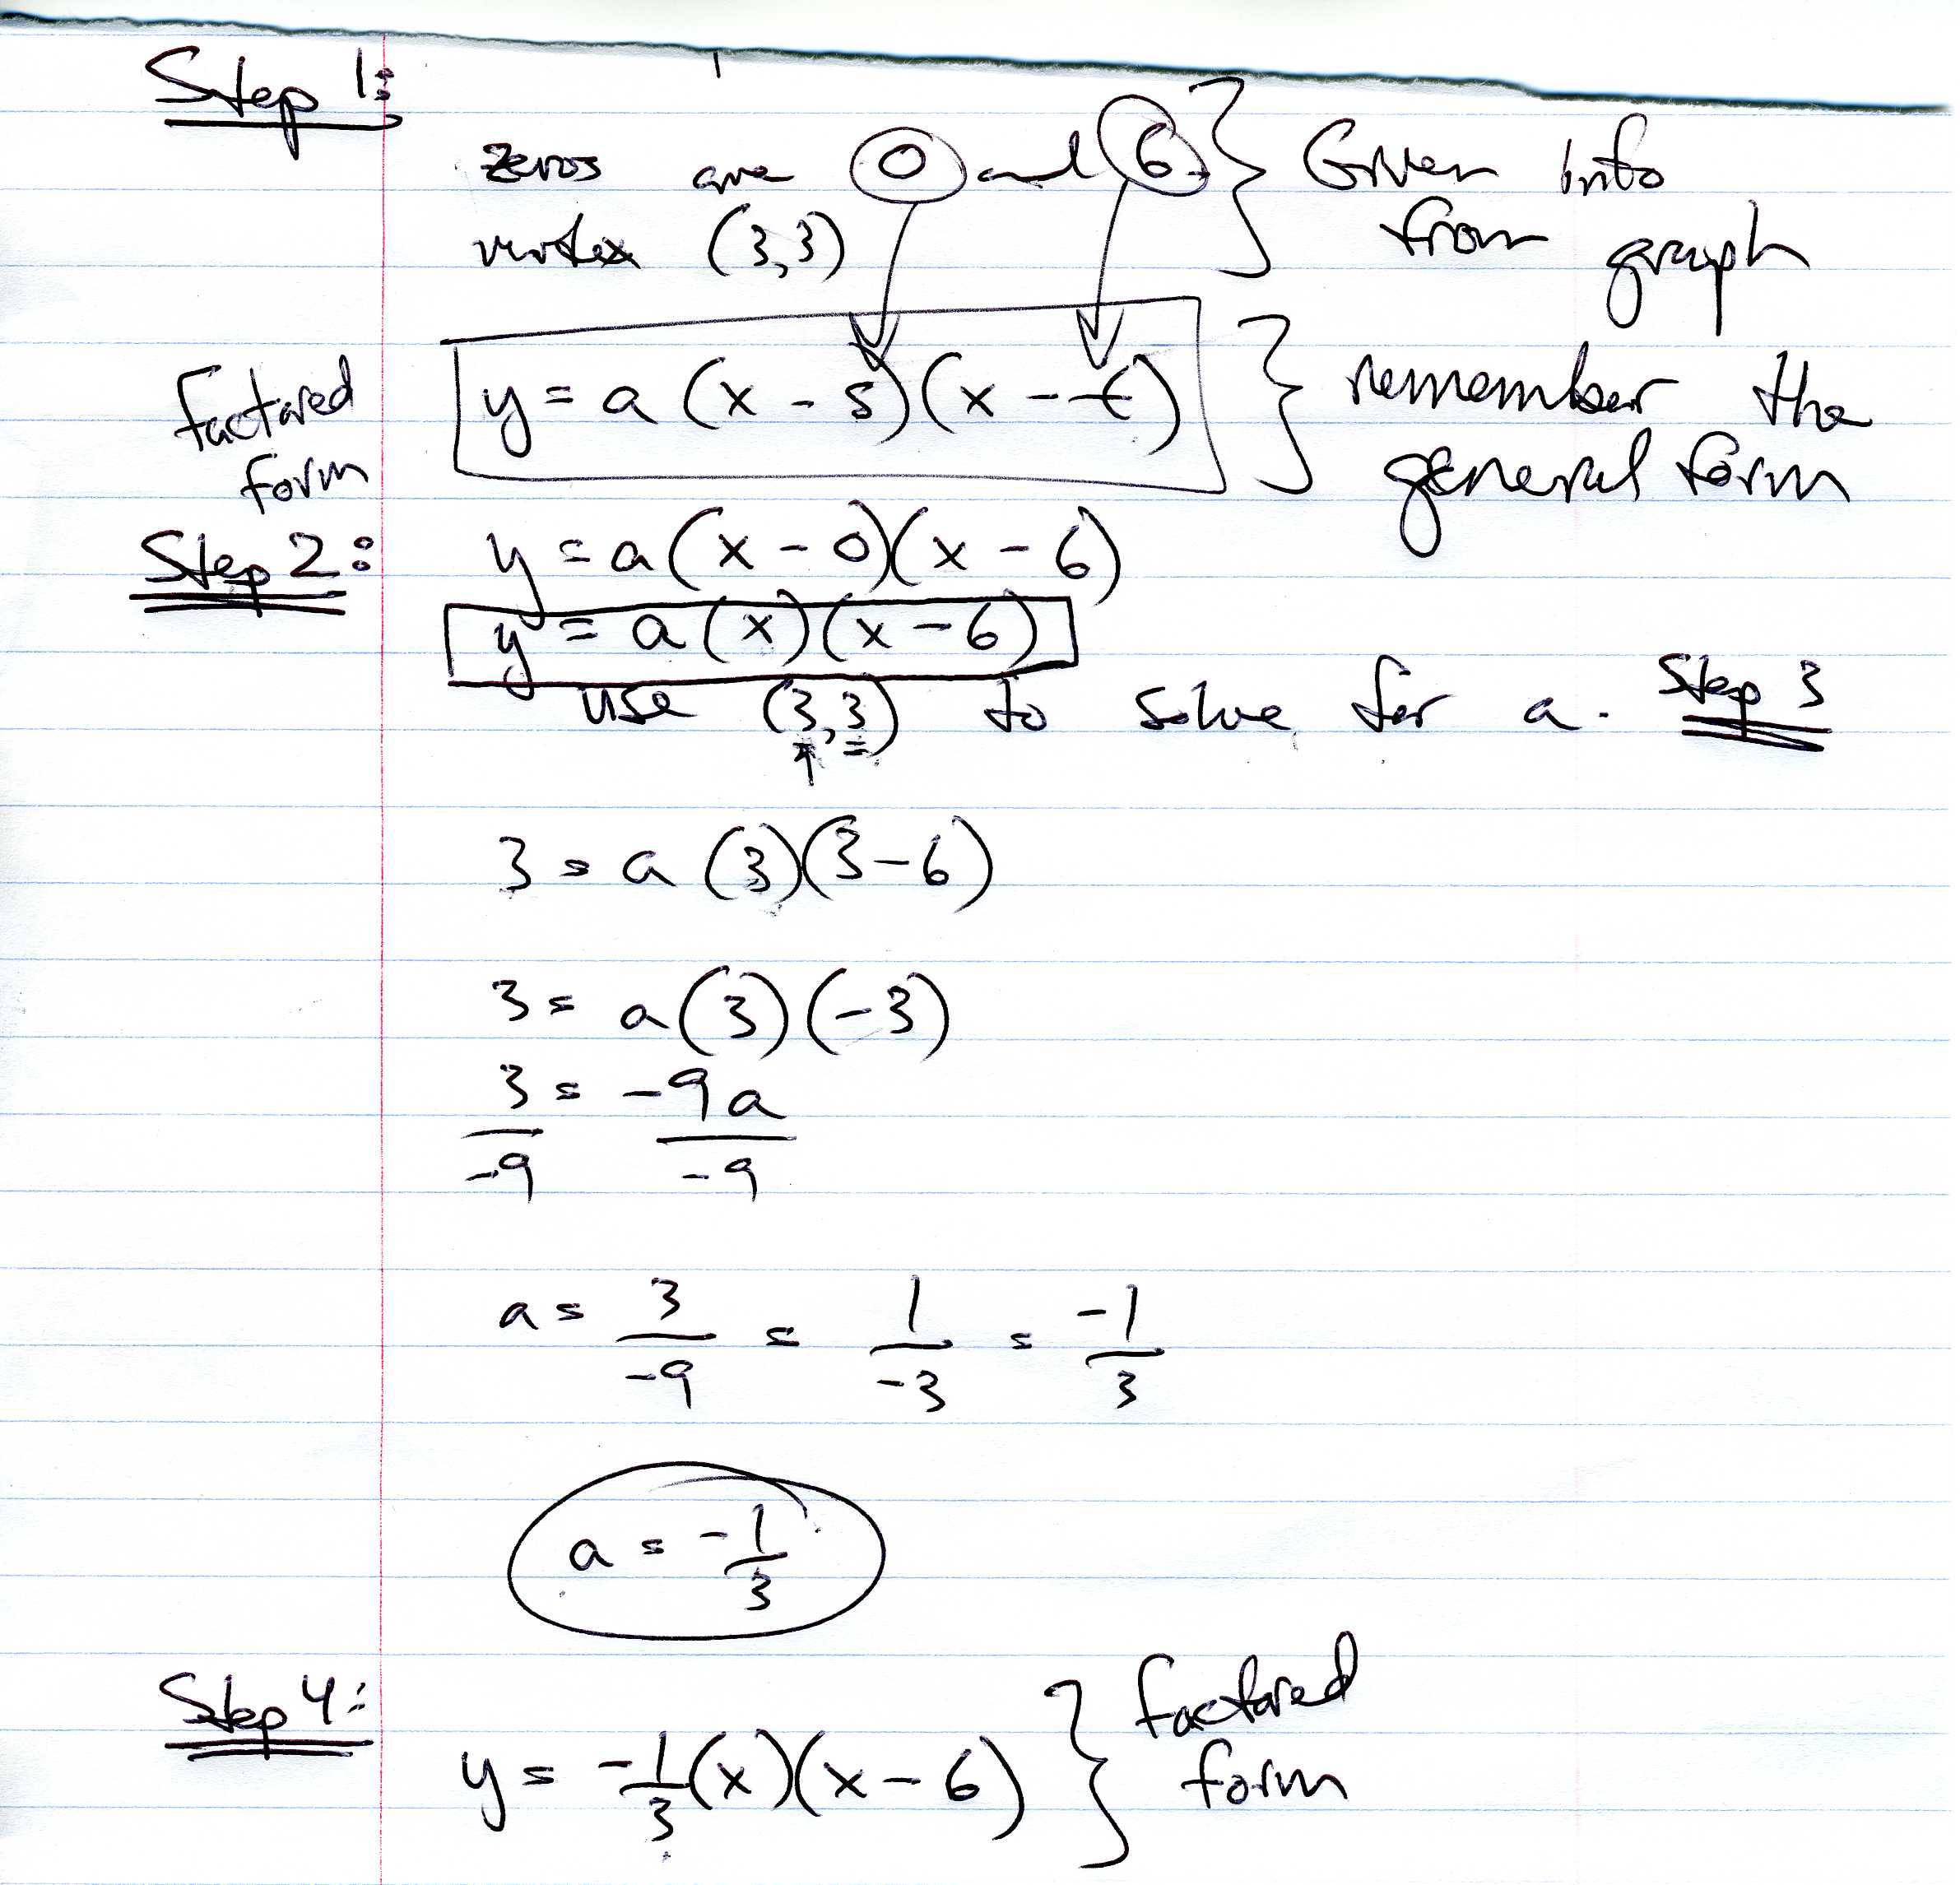 Eureka math grade 7 module 3 lesson 14 homework answers